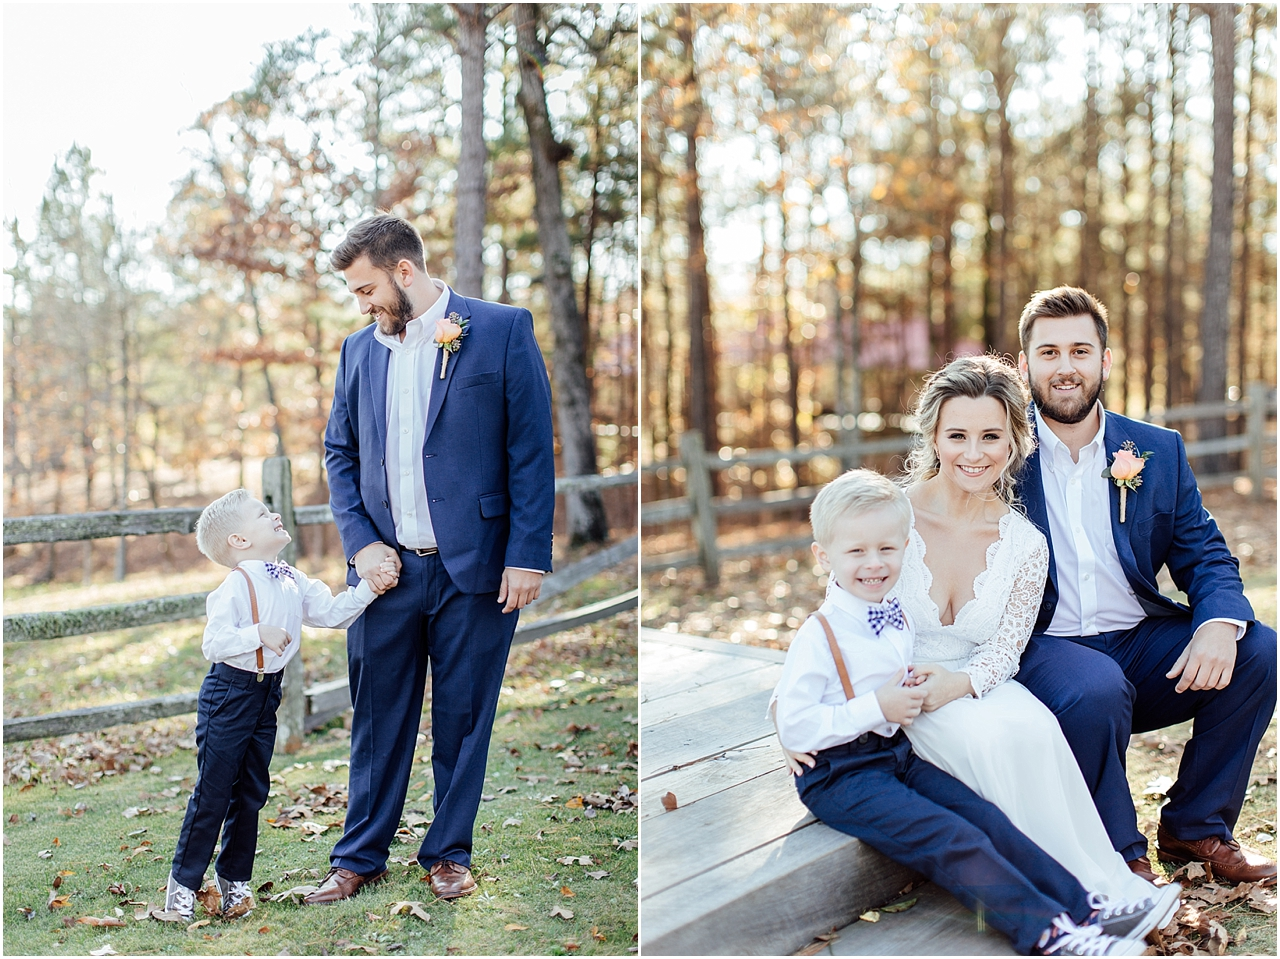 lindsey ann photography, blackberry lane farm, chelsea al wedding, birmingham wedding photographer, alabama wedding photographer, natural light photographer